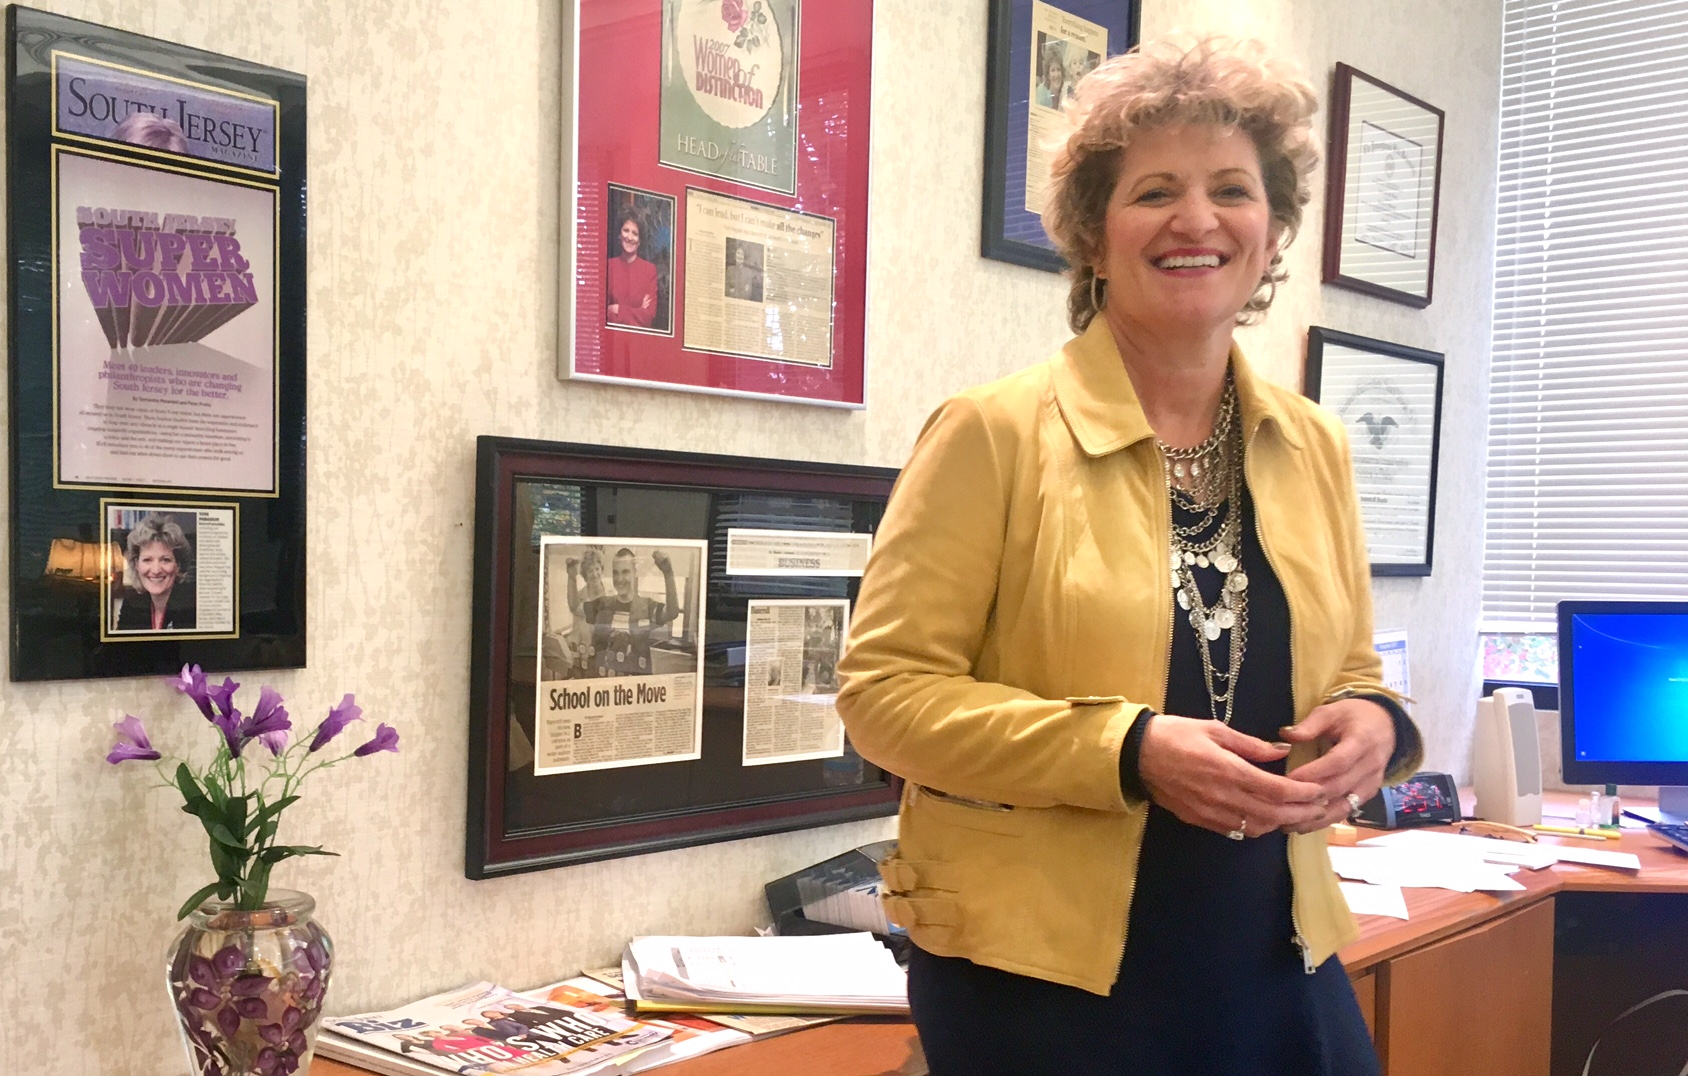 Toni Pergolin, who has headed Haddonfield´s venerable Bancroft campus since 2004, says the decision to leave the borough was not made lightly.